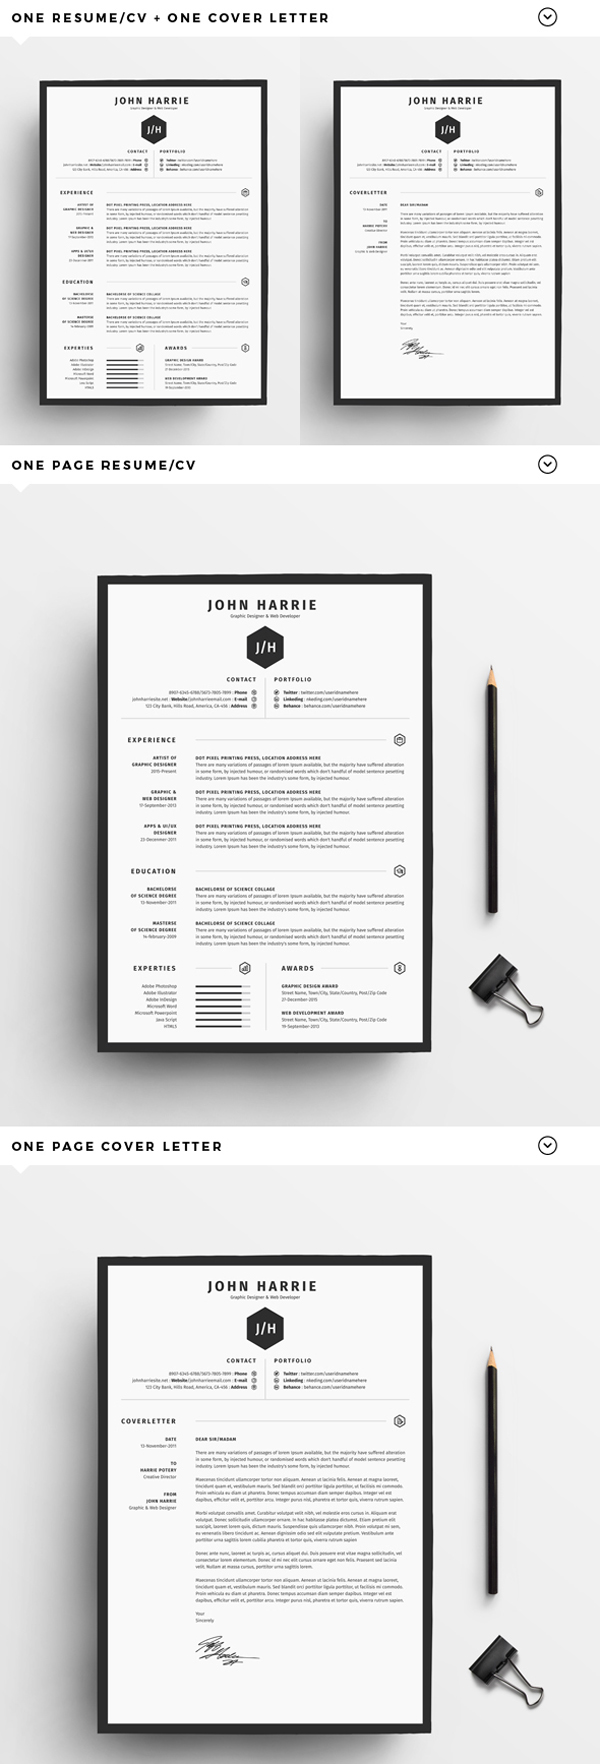 free resumecv cover letter - Free Resume And Cover Letter Templates